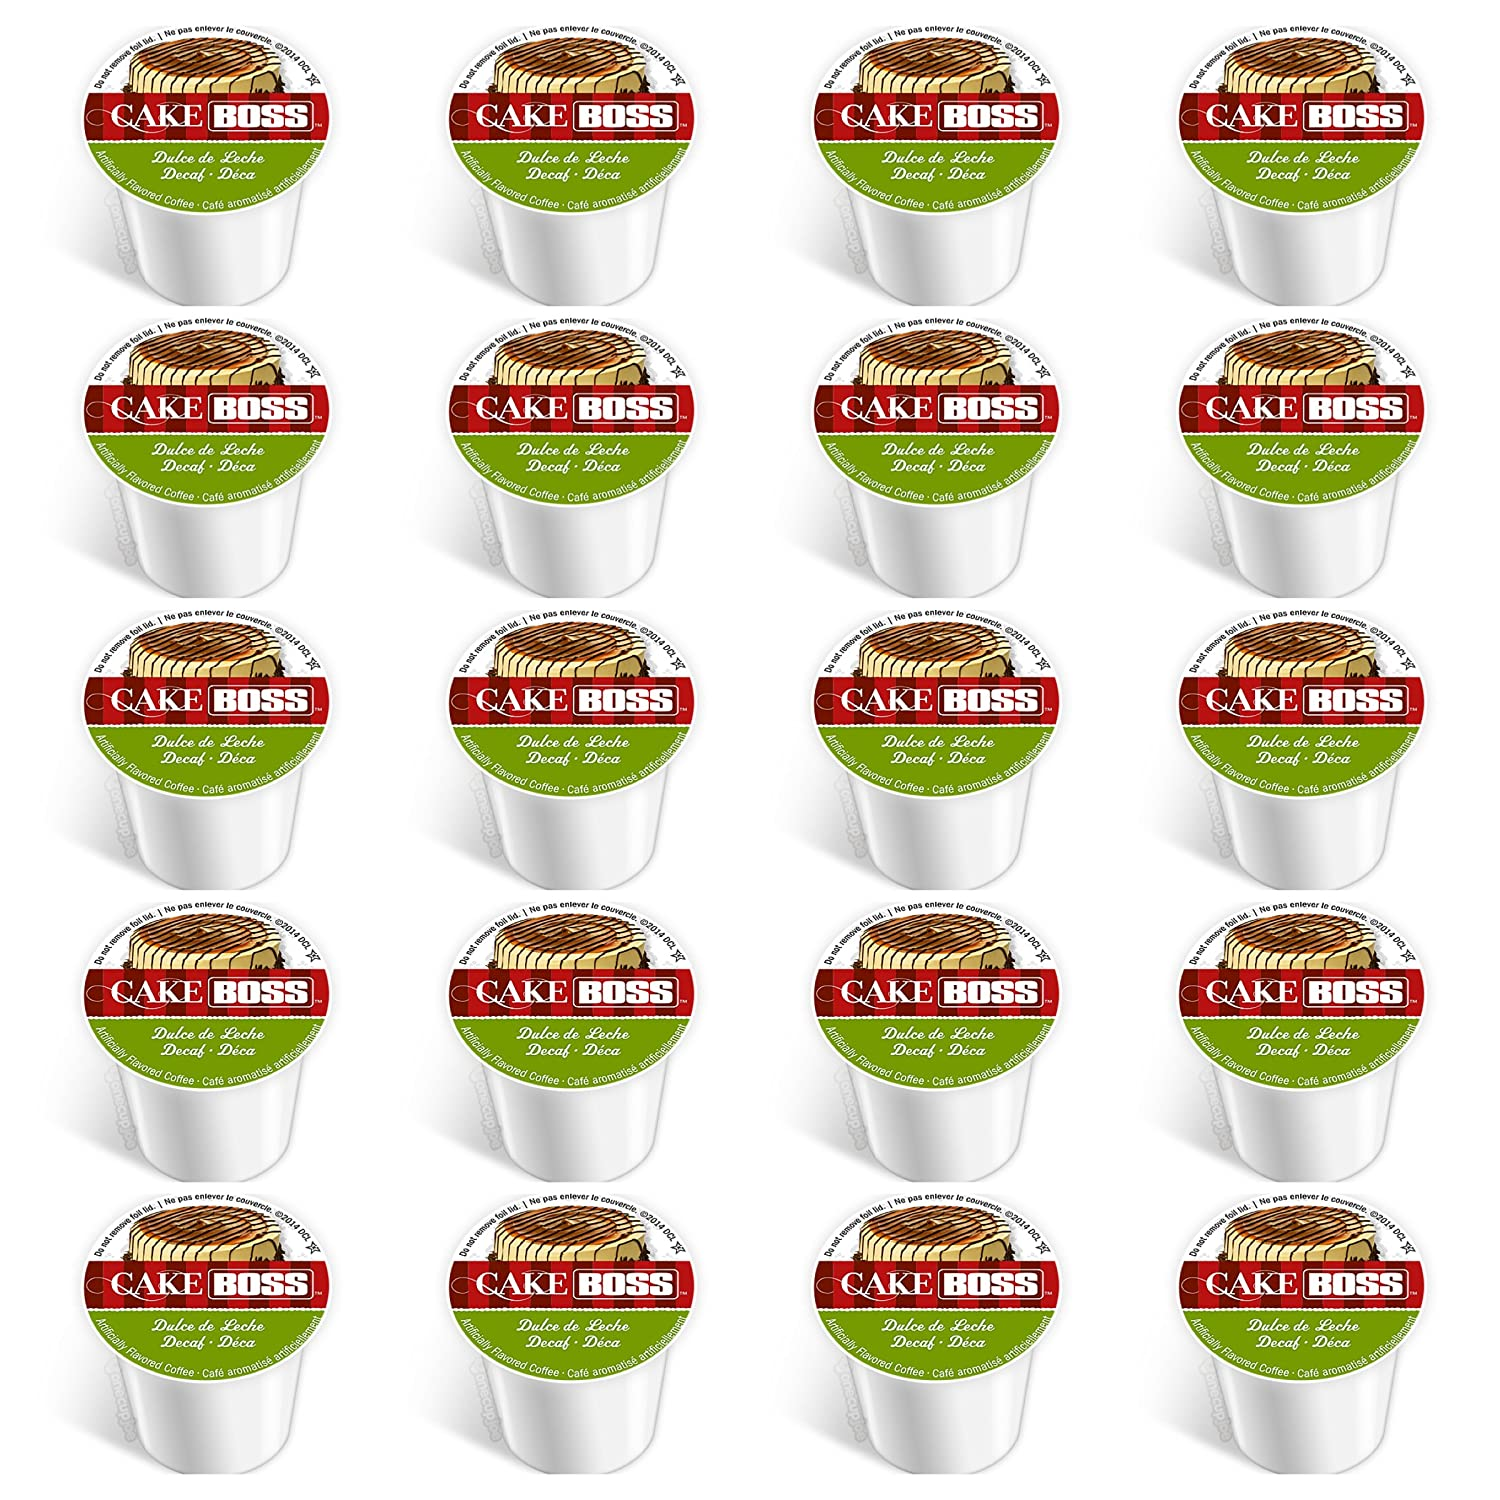 Cake Boss Dolce De Leche Decaf Single Cup Coffee for Keurig® K Cup® Brewers - 20 Ct.: Amazon.com: Grocery & Gourmet Food